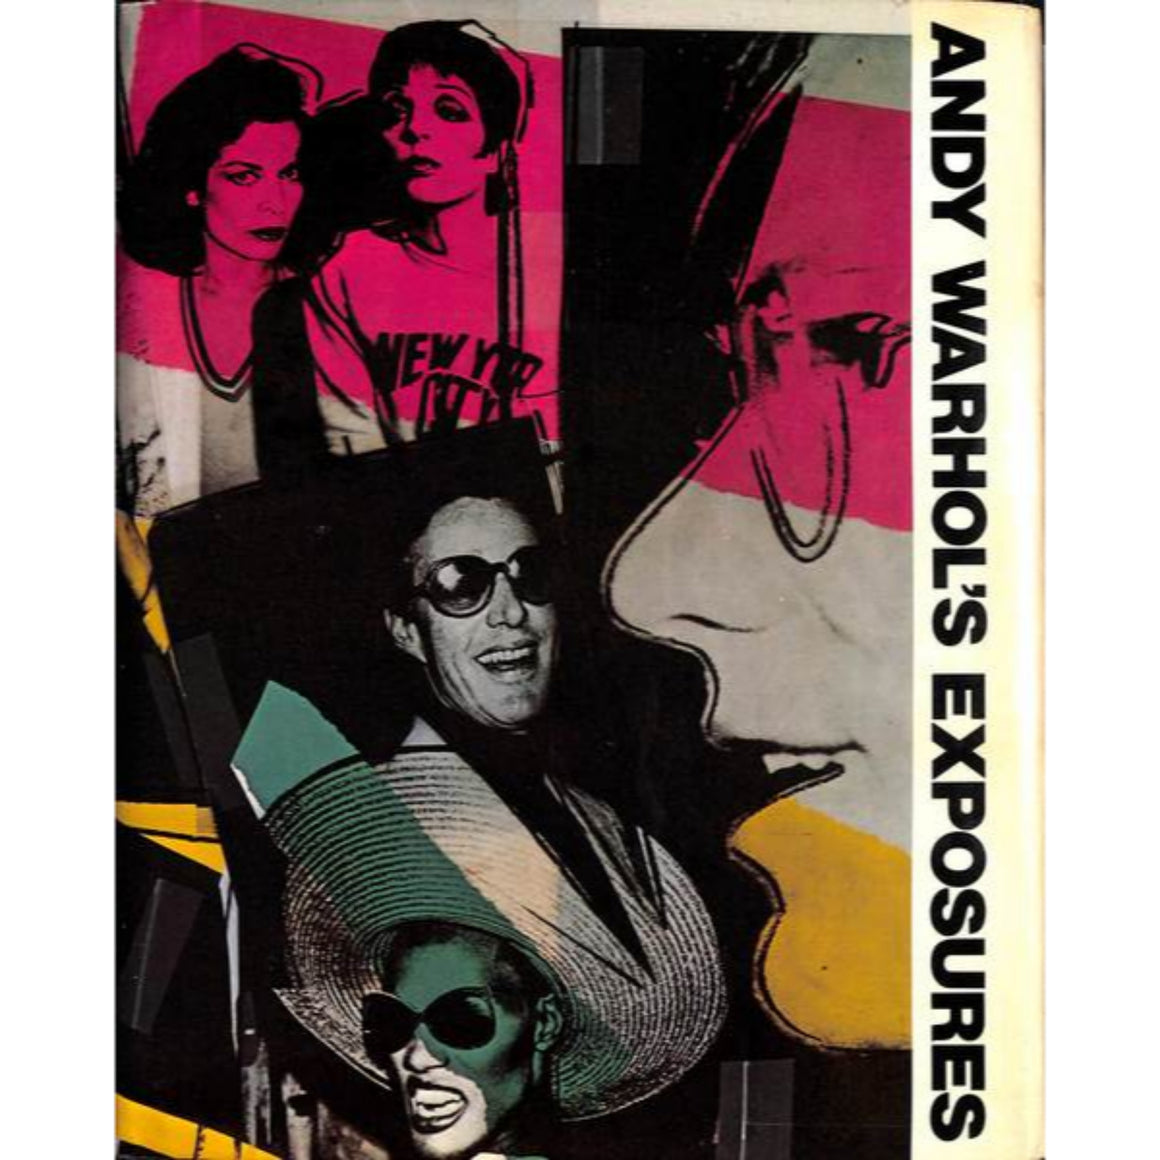 'Andy Warhol's Exposures' 1979